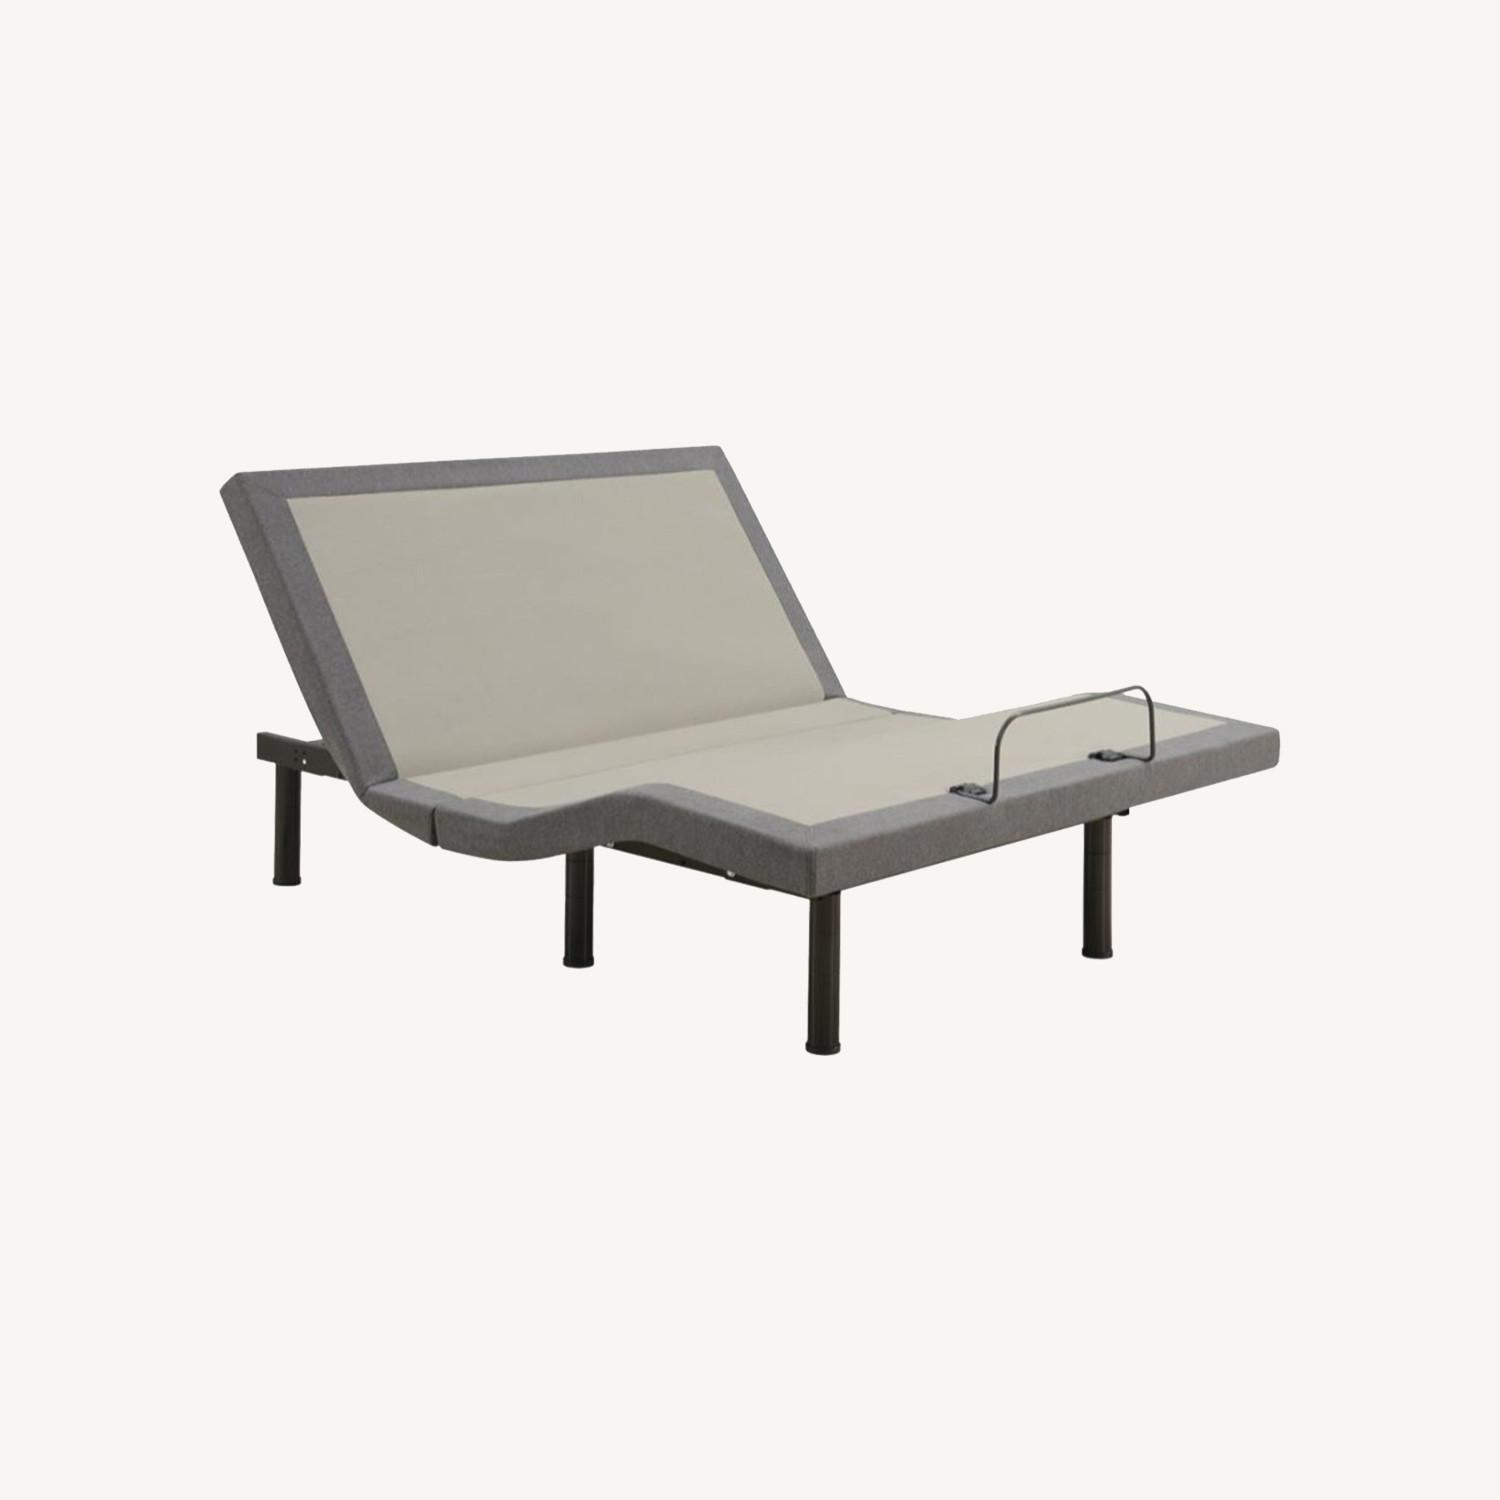 Adjustable Queen Bed Base In Grey Fabric - image-10